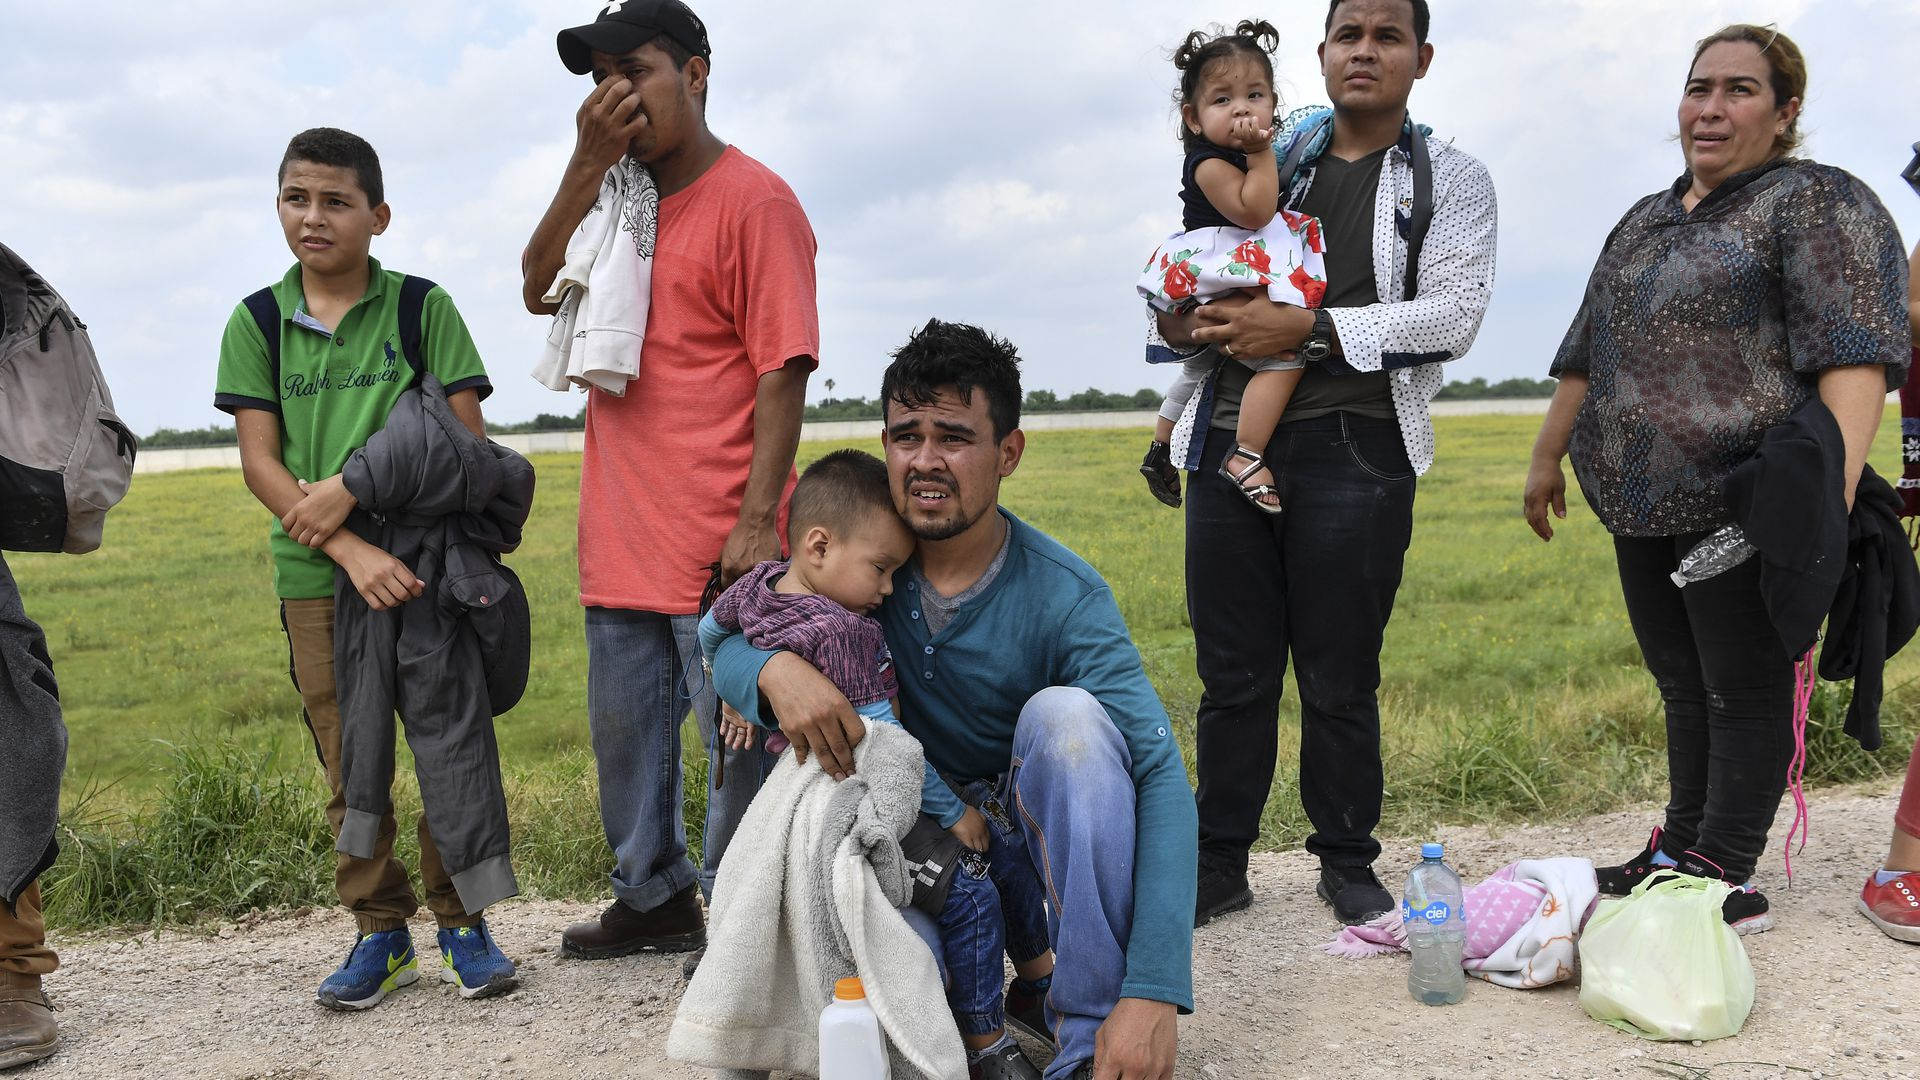 In this image, a line of migrants stand outside, several holding small children.